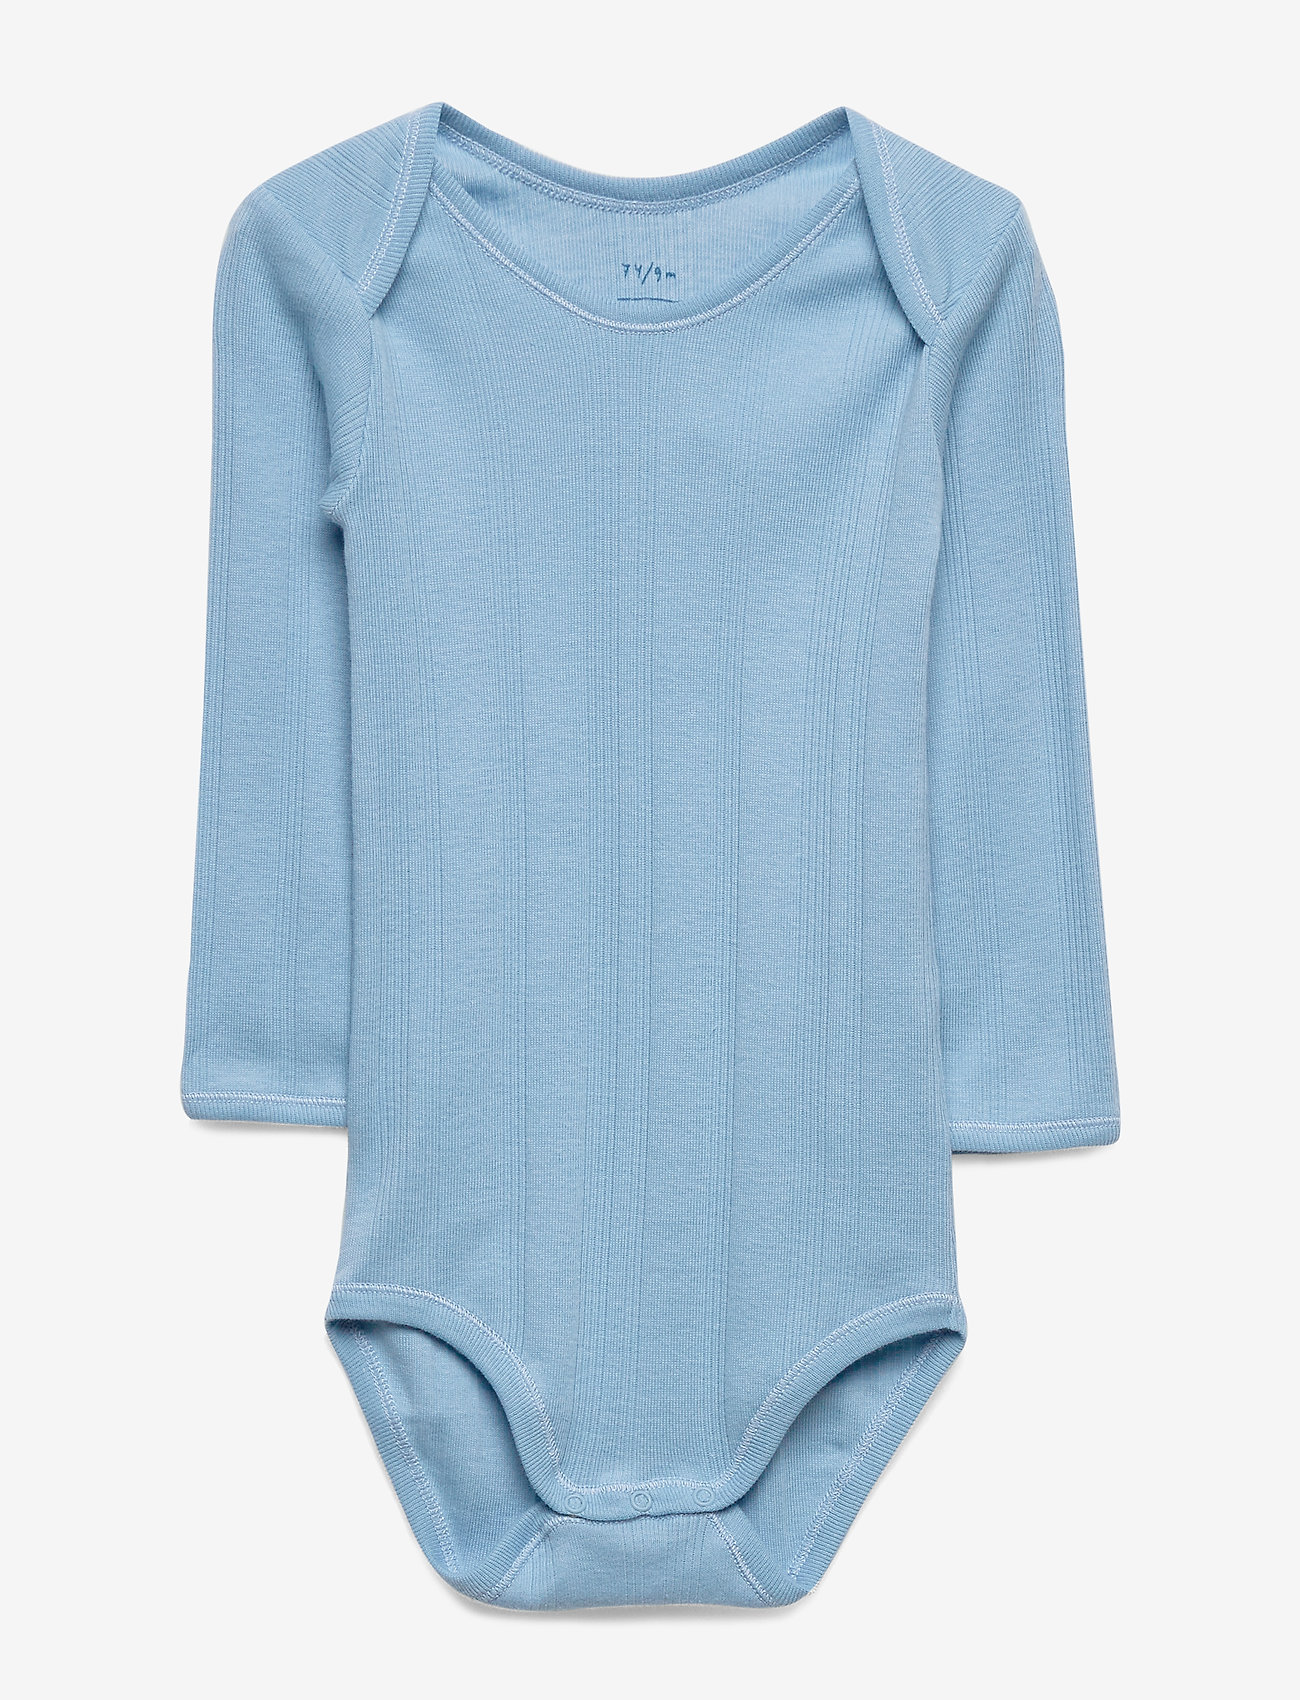 Noa Noa Miniature - Baby Body - long-sleeved - dusk blue - 0